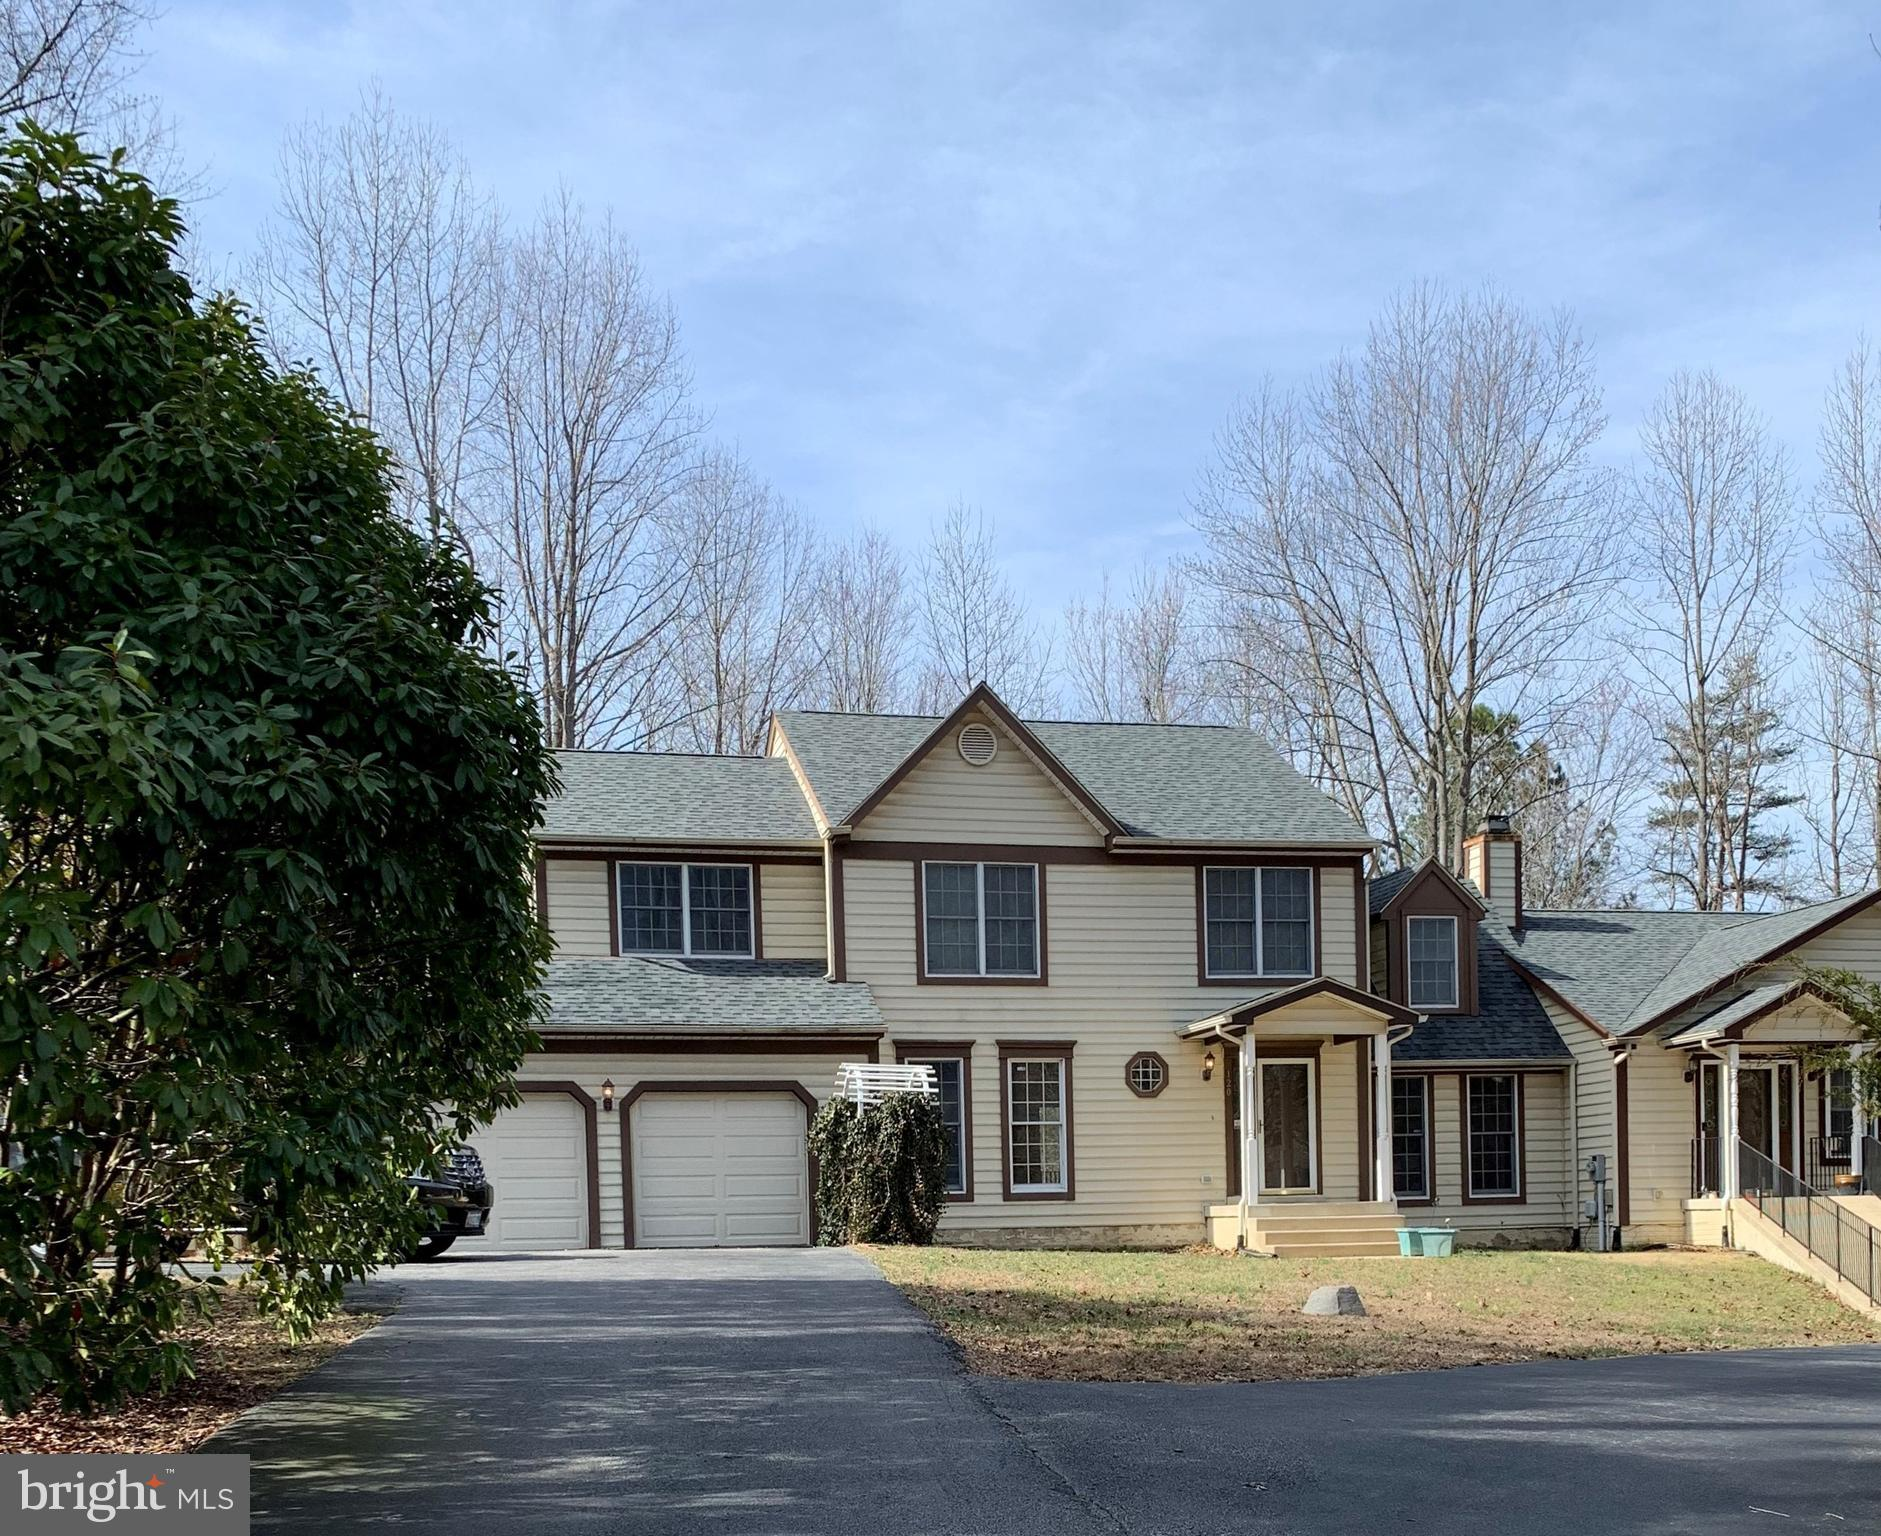 VERY ACCOMMODATING! Large Immediately Available Home on 1 Acre Lot.  6 BR, 6.5 BA, hardwood main lev